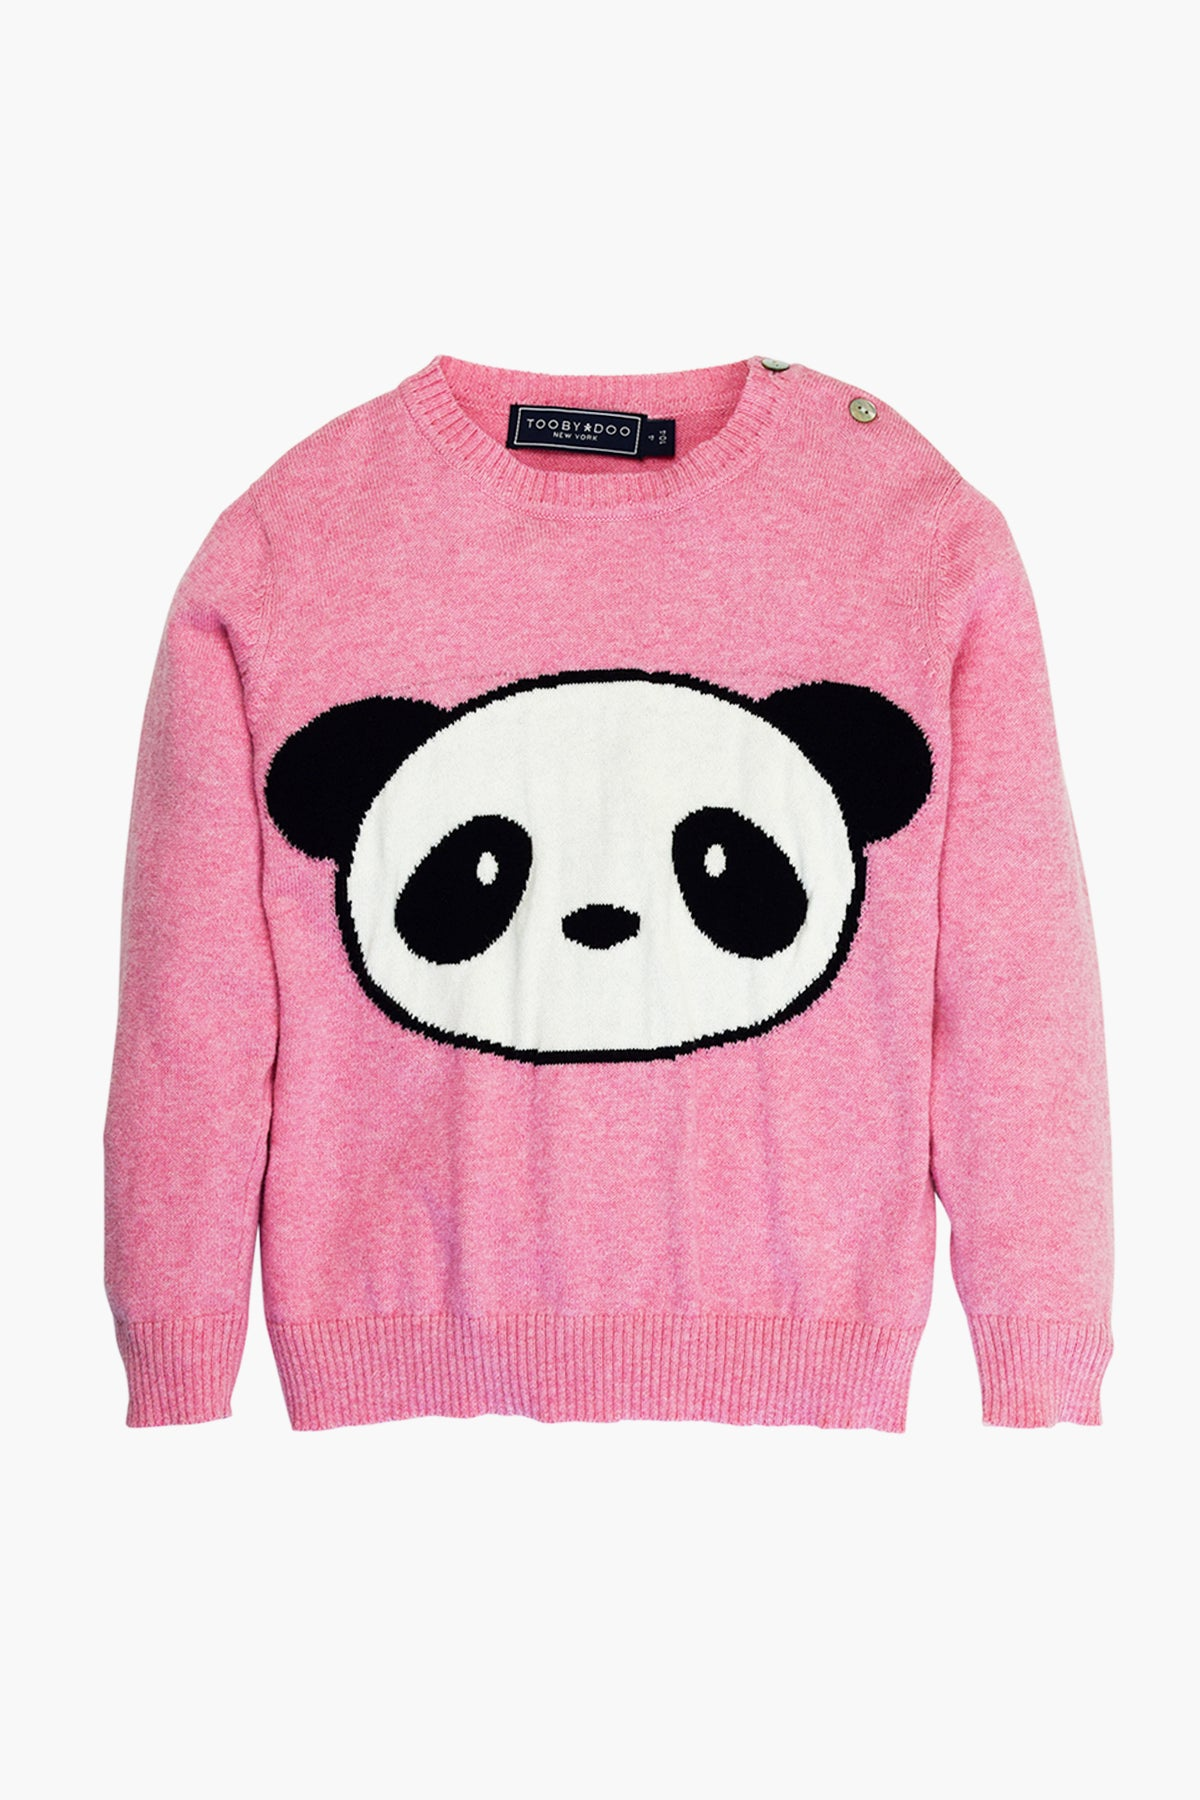 Toobydoo Cashmere Panda Sweater